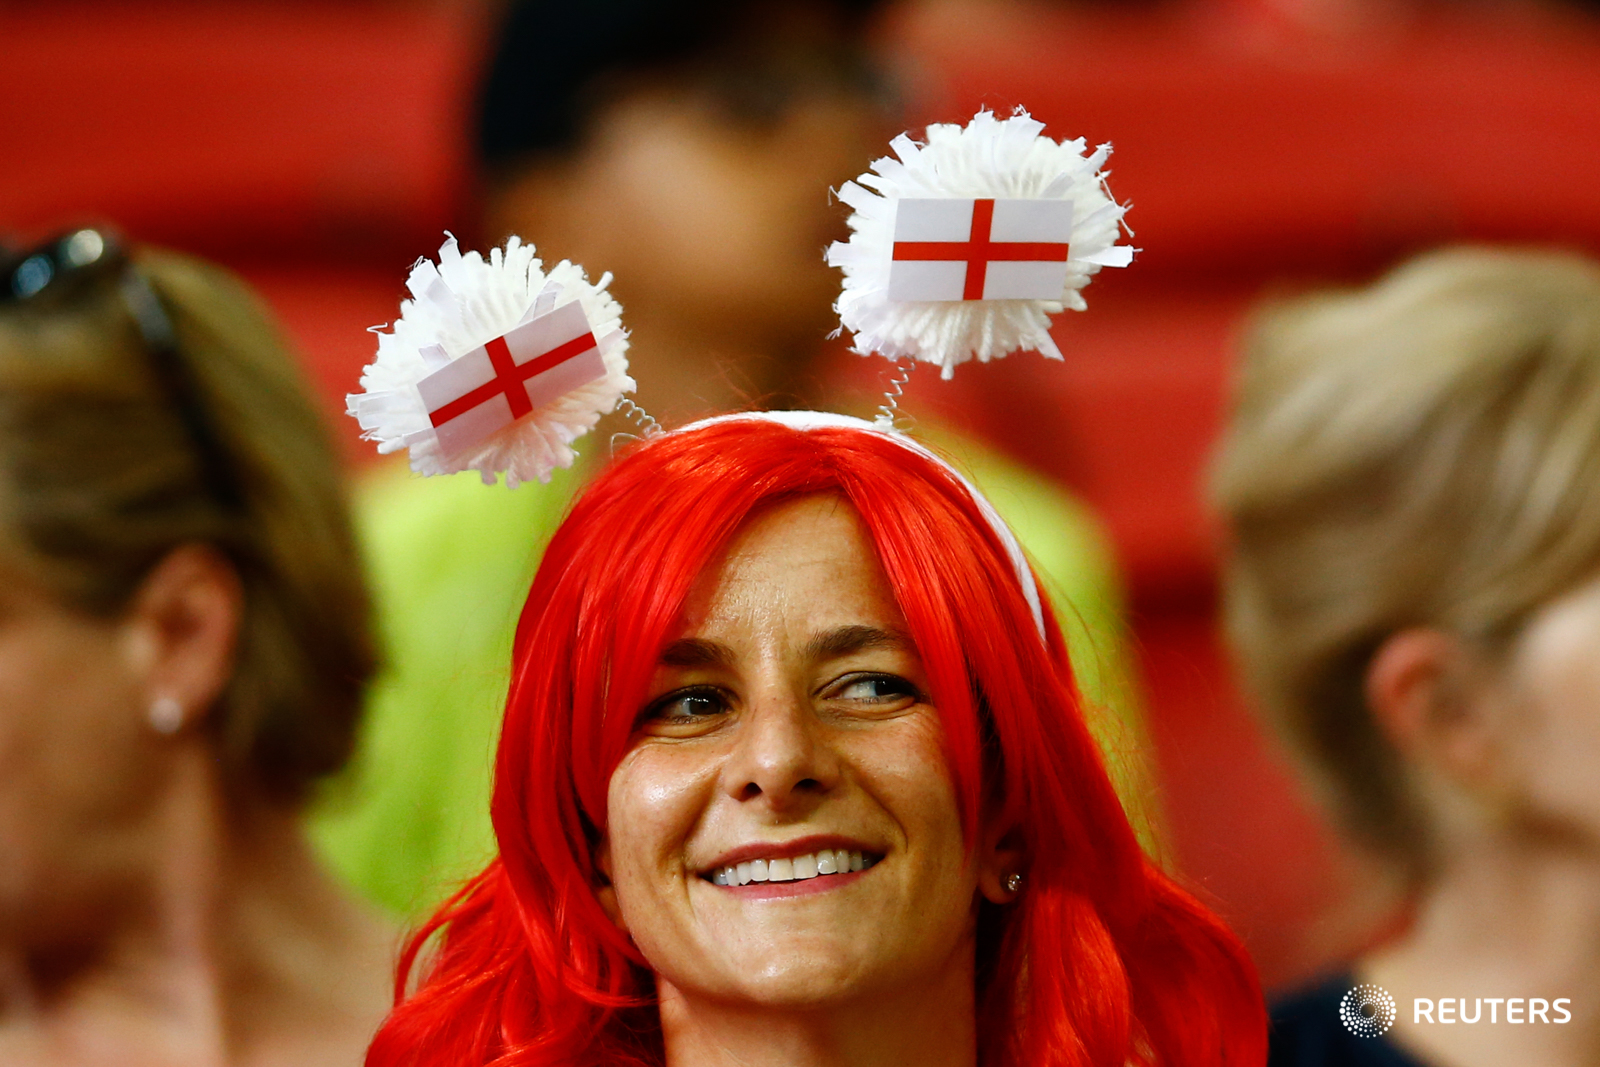 Rugby Union - Singapore Sevens - National Stadium, Singapore, 15/04/17 - An England rugby fan reacts. REUTERS/Yong Teck Lim